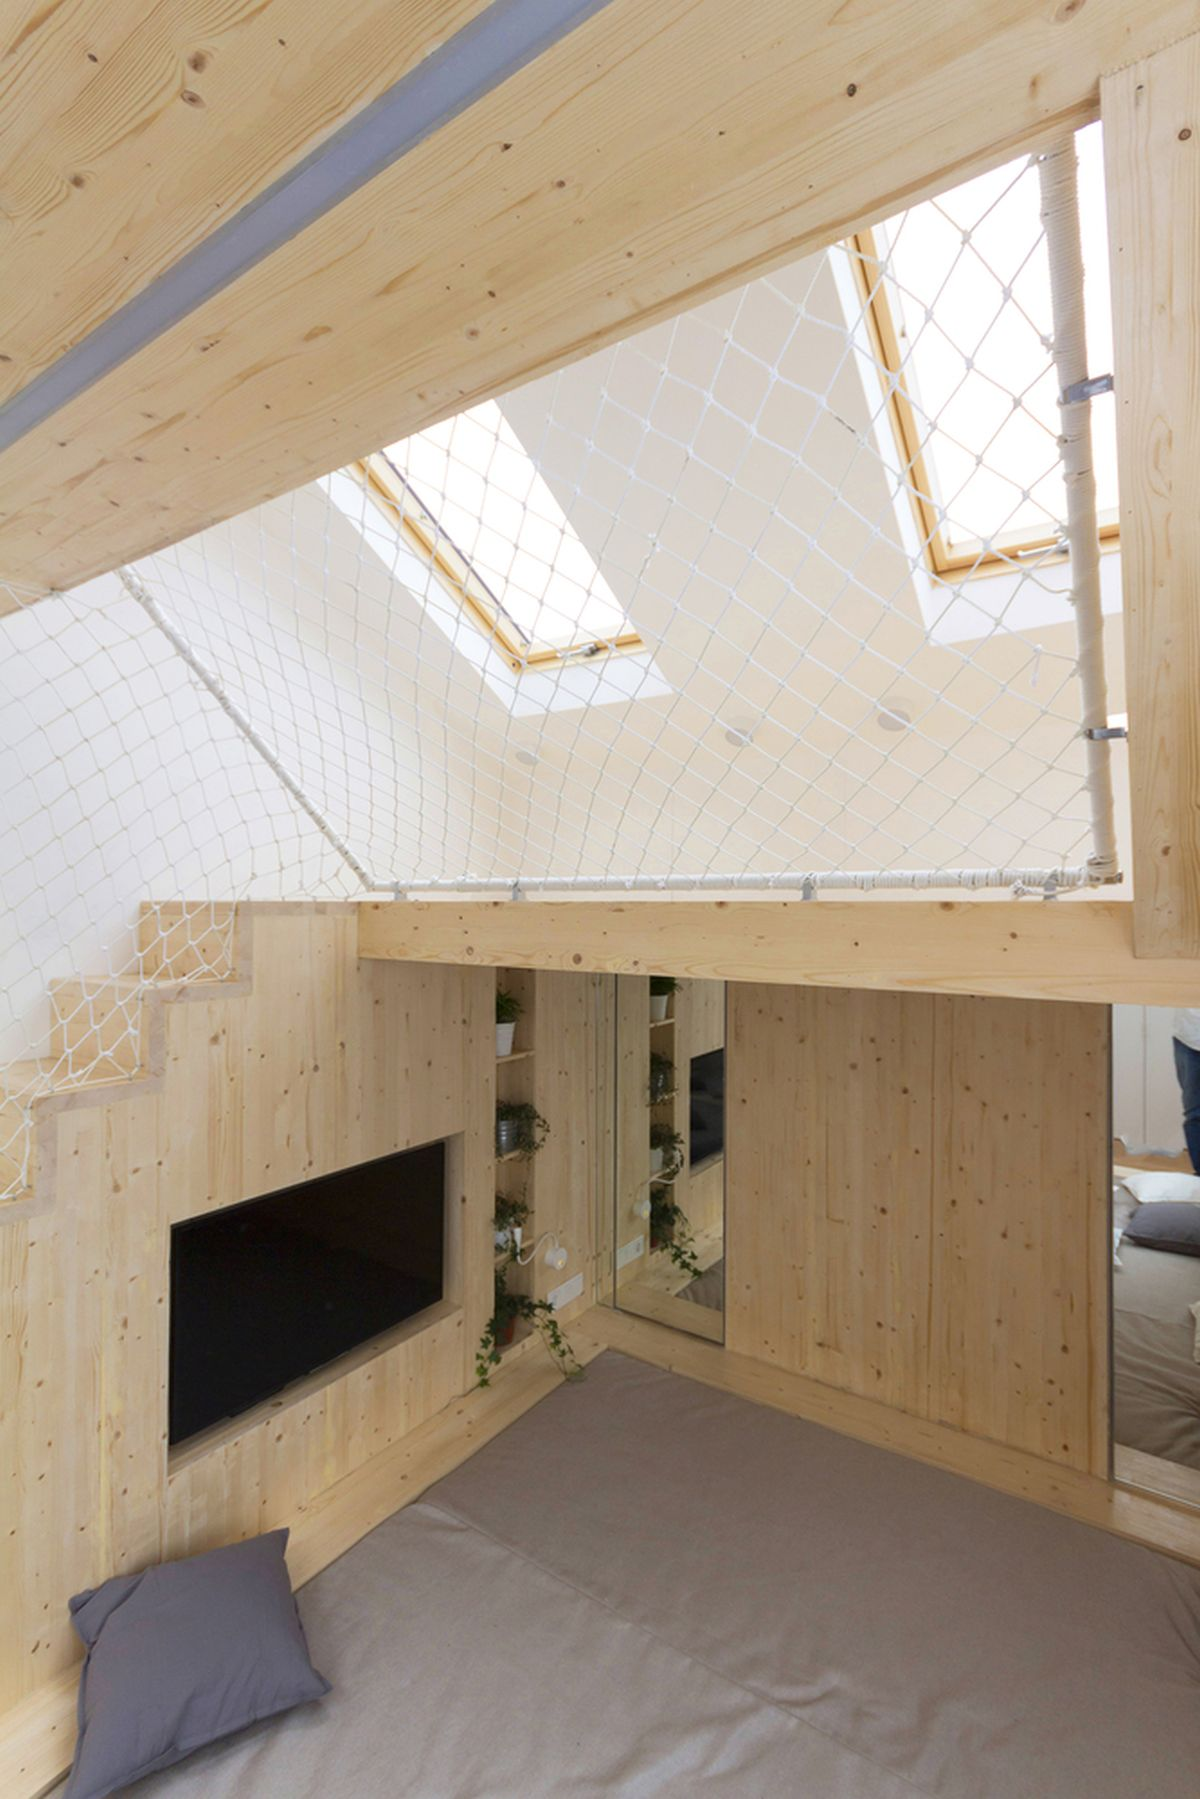 Ruetemple summer family home built-in TV and mirror